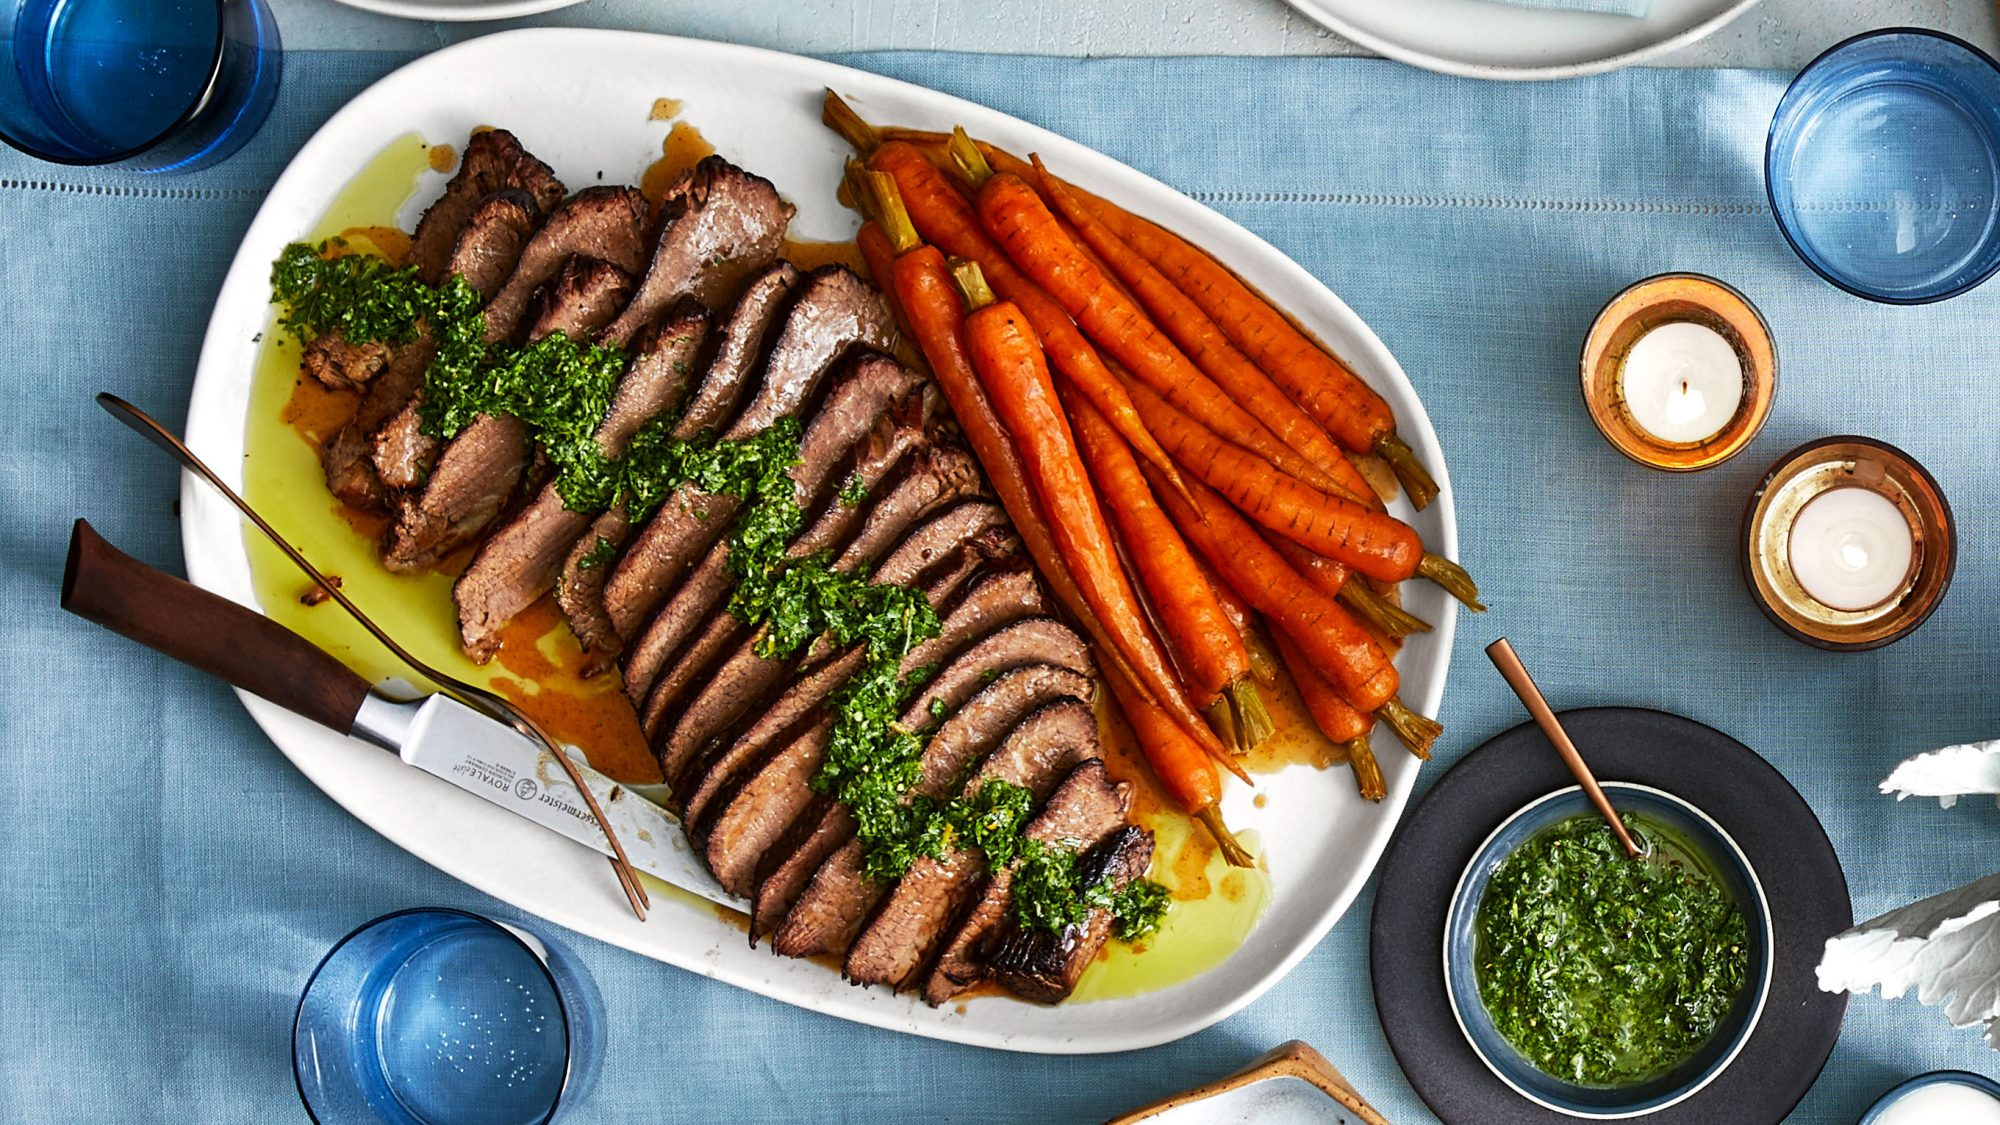 Brisket with Carrots and Horseradish-Parsley Gremolata